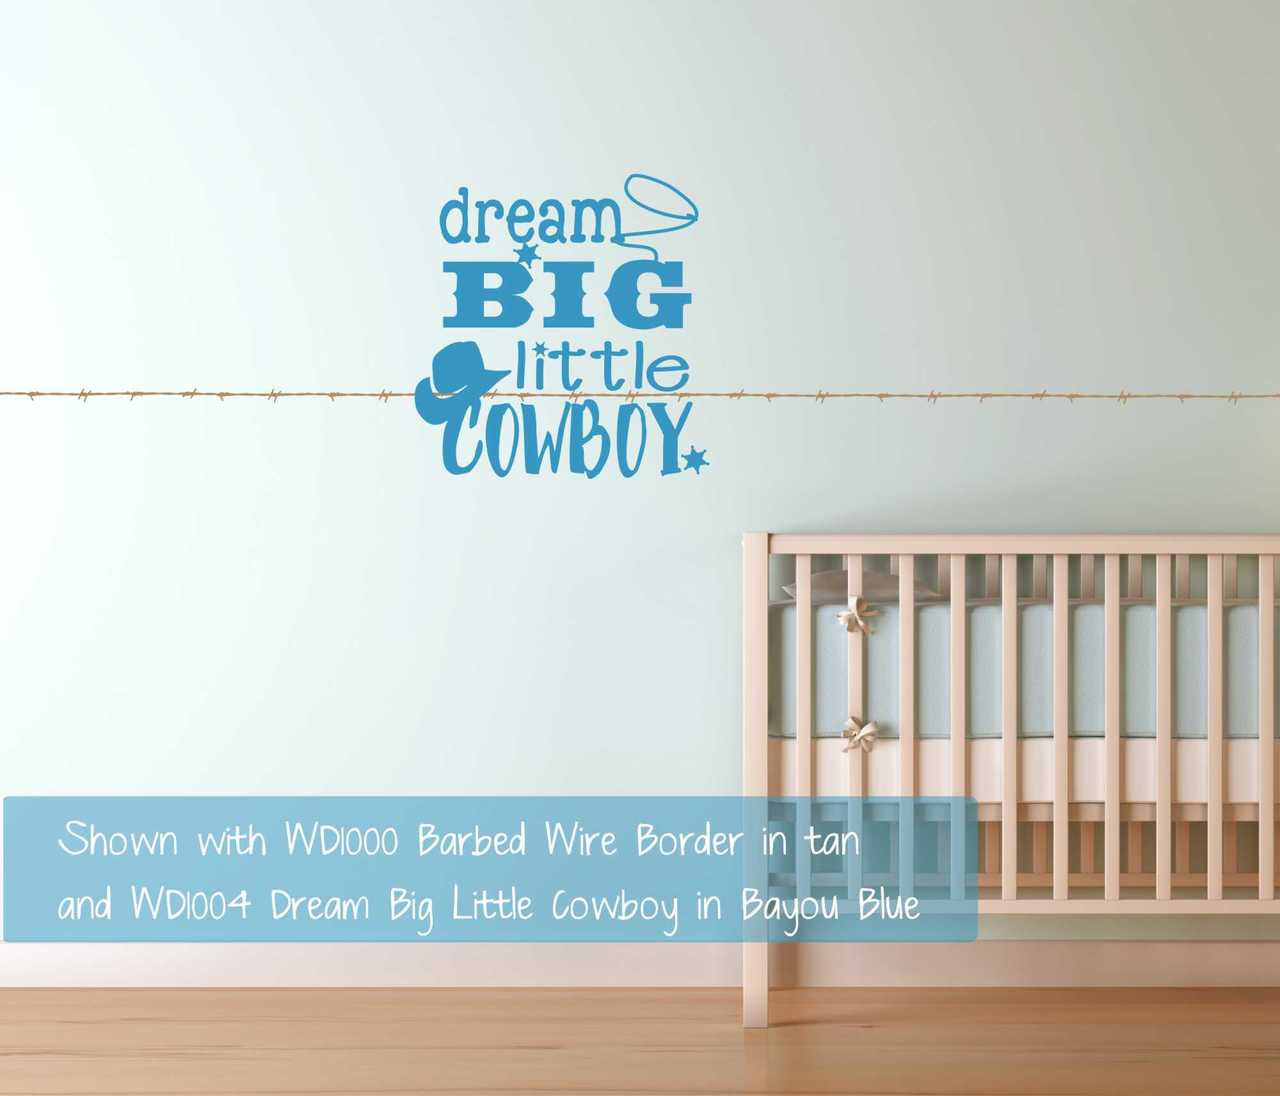 Dream big little cowboy western wall decals quotes boys room loading zoom amipublicfo Images